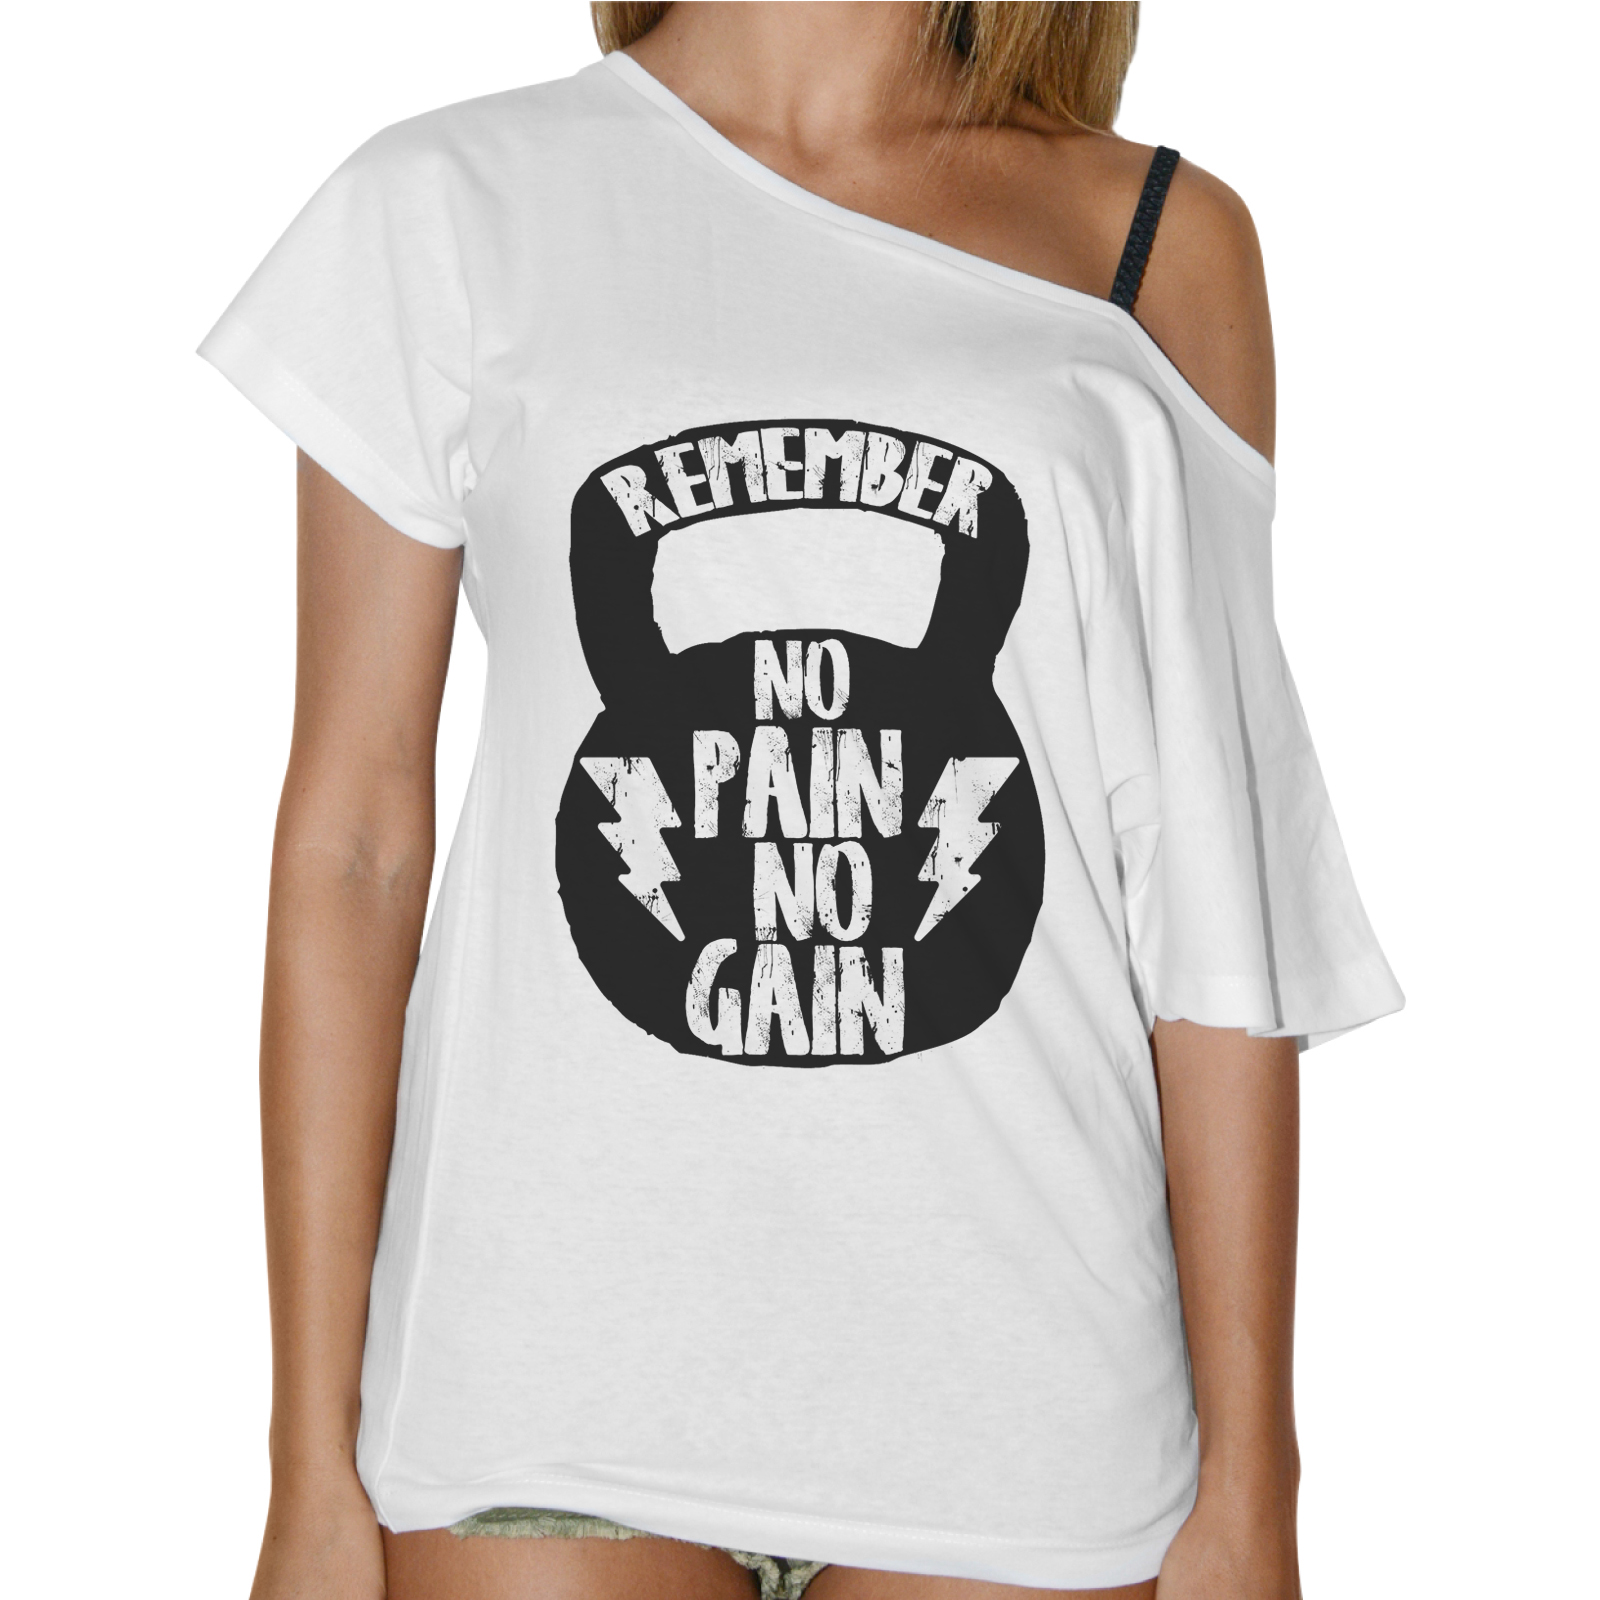 T-Shirt Donna Collo Barca NO PAIN NO GAIN